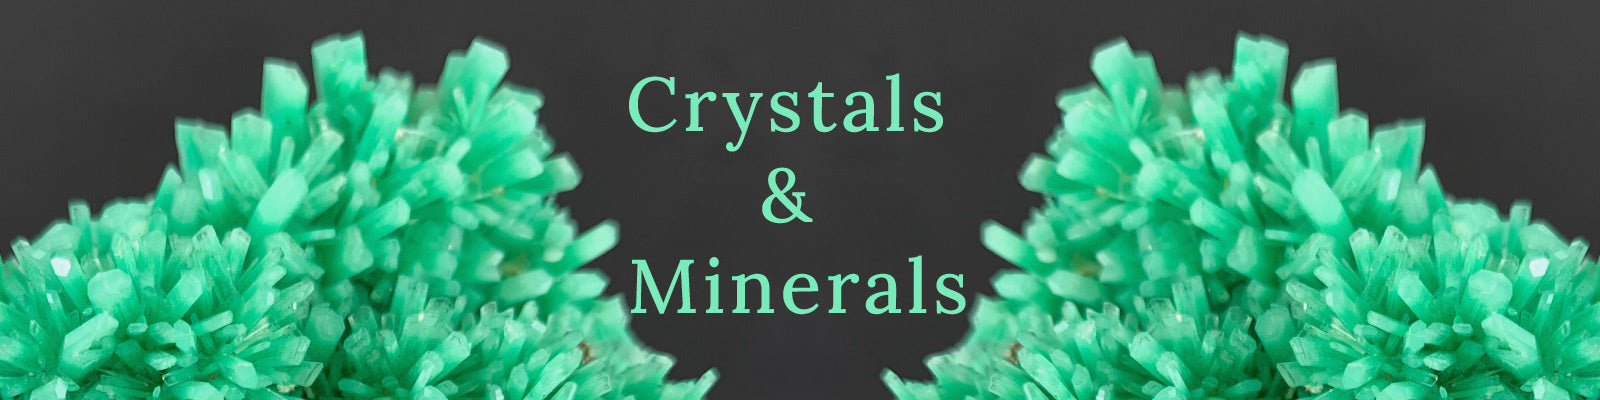 Crystals and Minerals For Sale at Unearthed